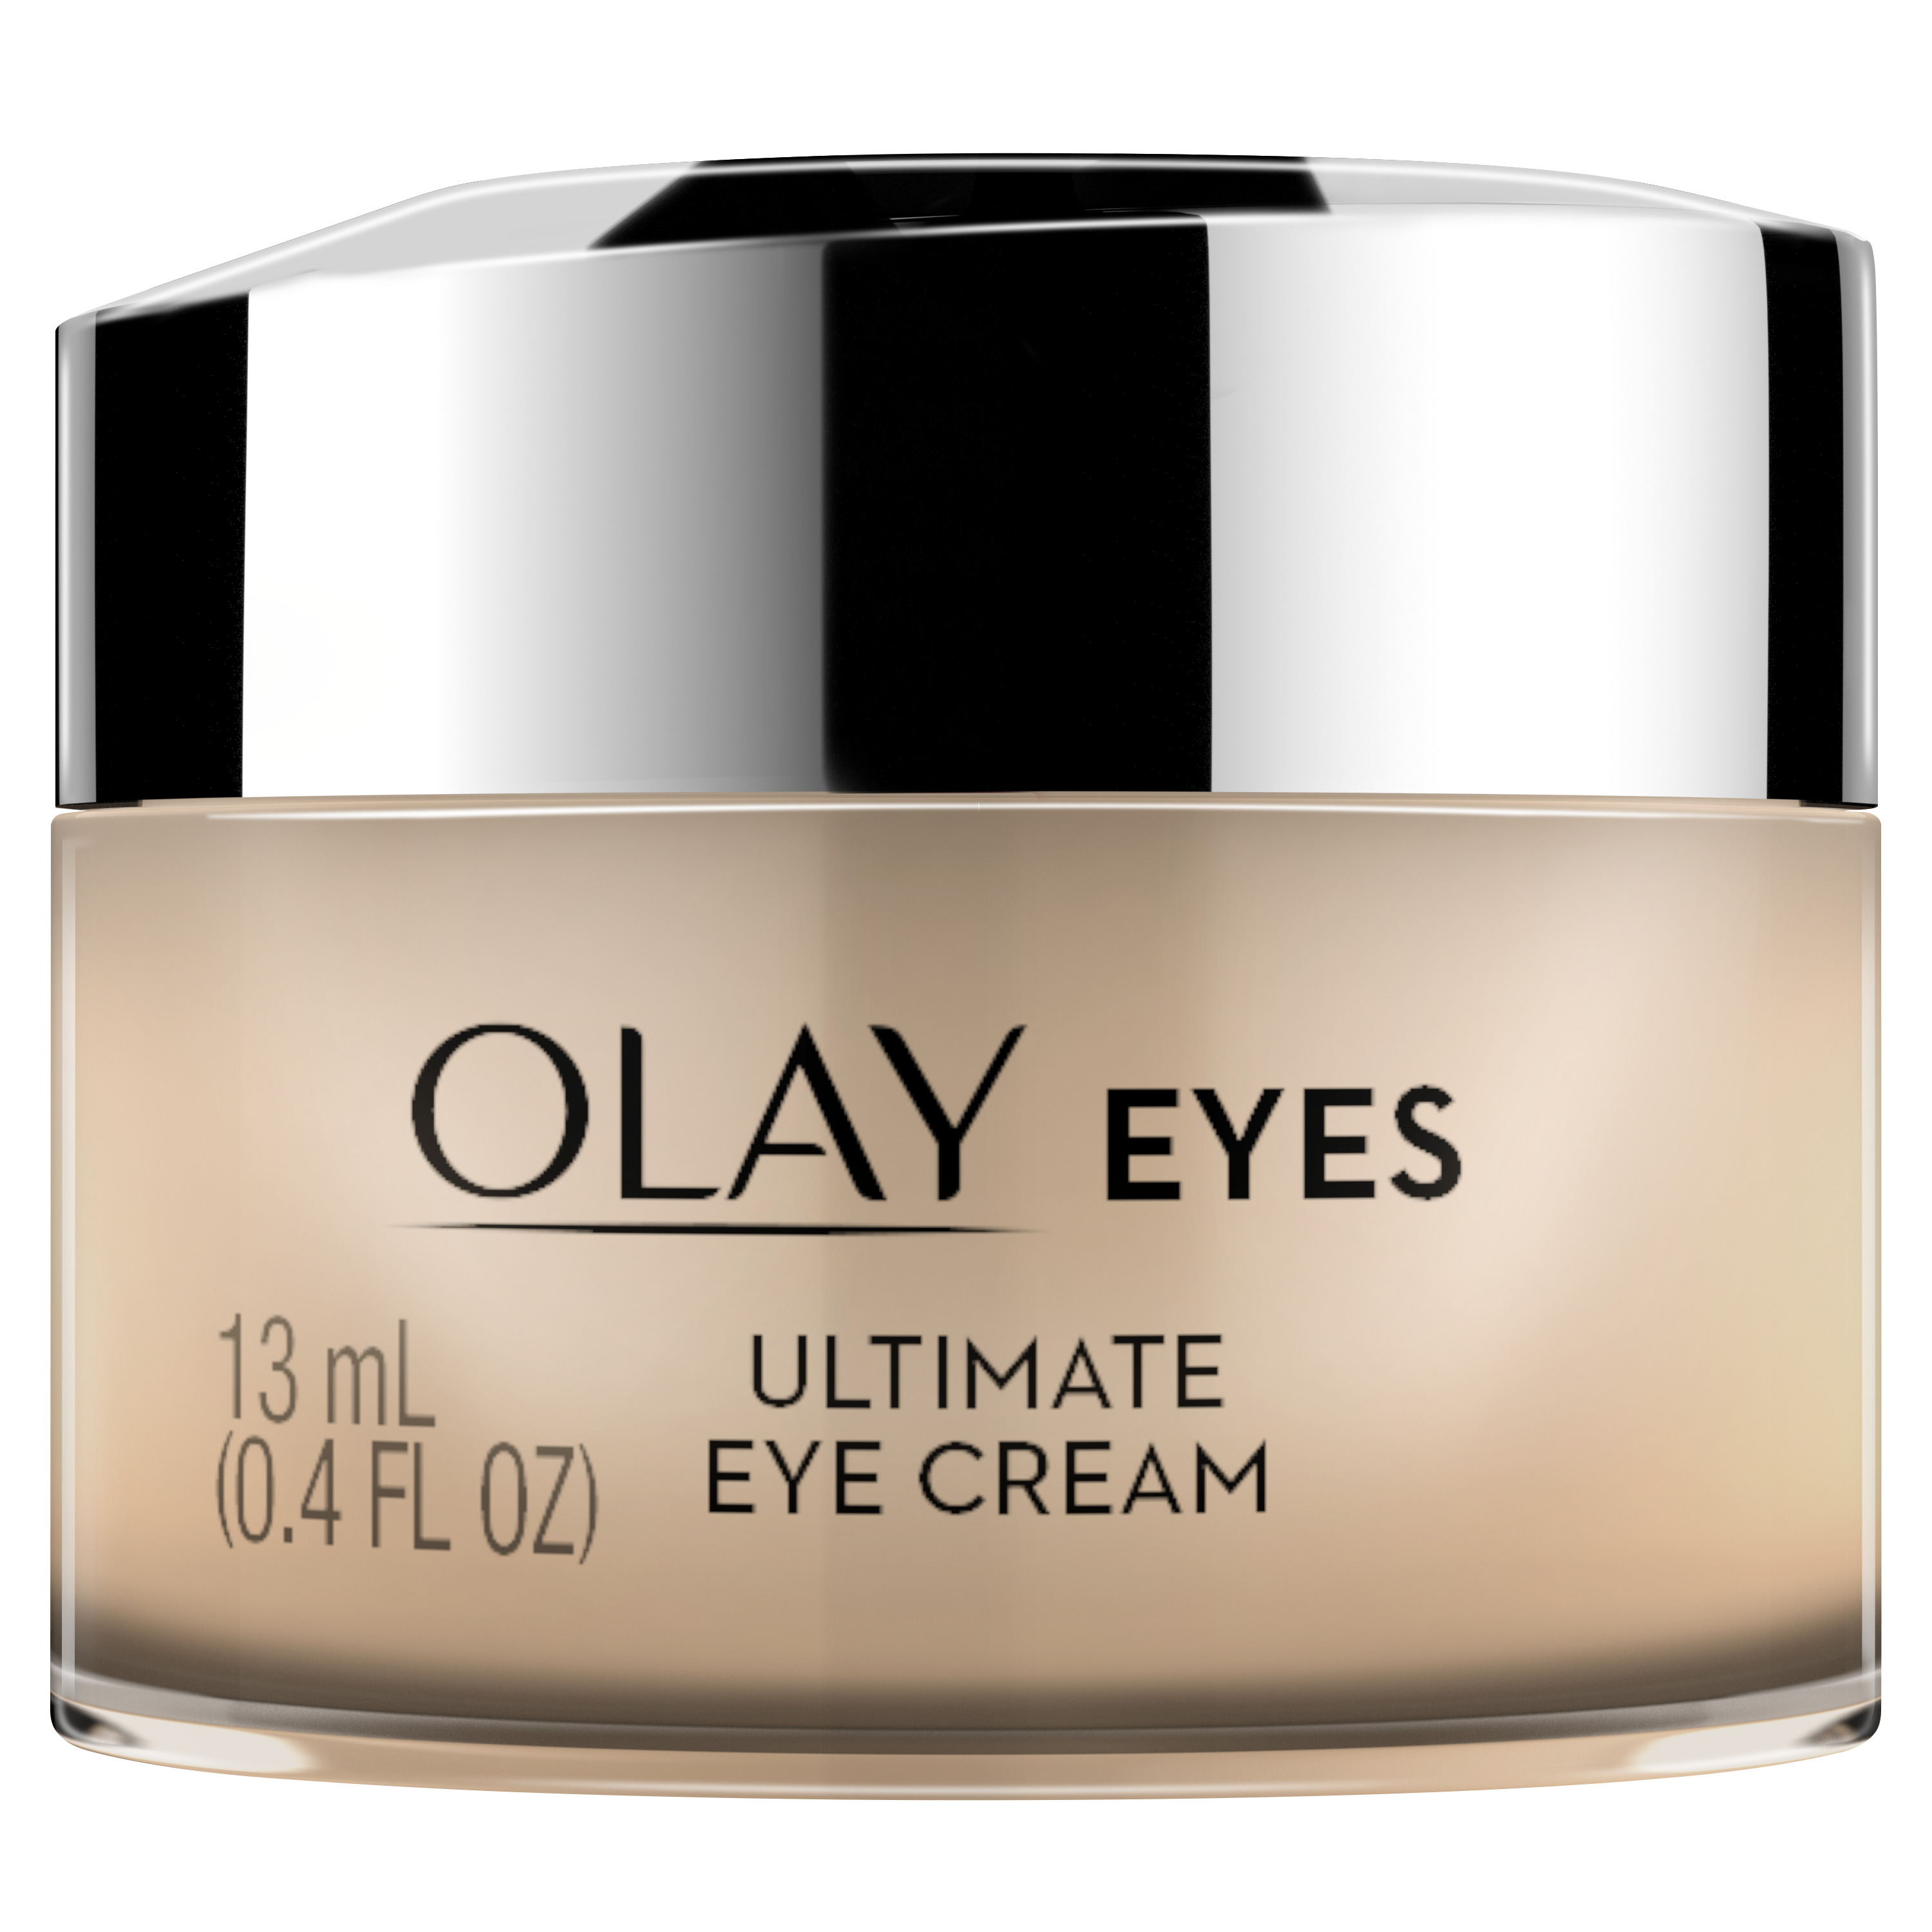 Olay Eyes Ultimate Eye Cream for wrinkles, puffy eyes, and dark circles, 0.4 fl oz